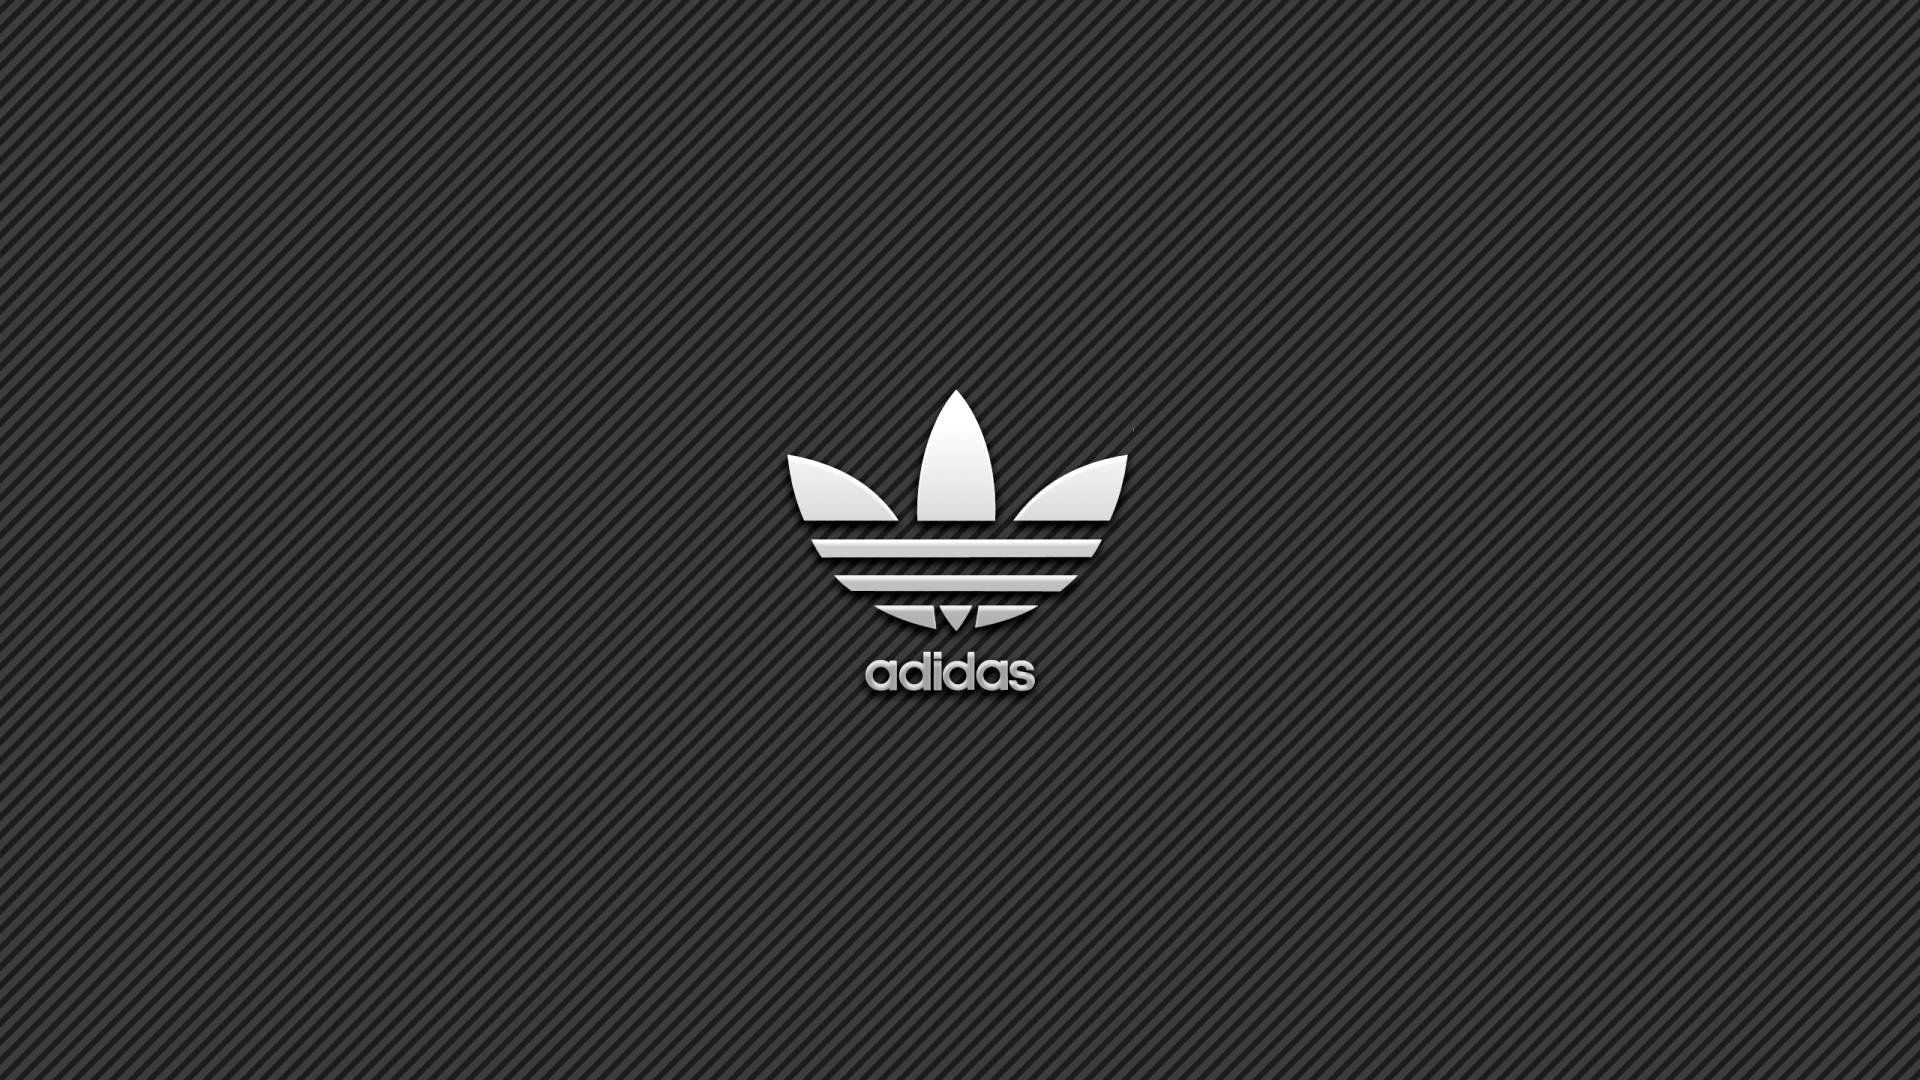 adidas background Background of adidas - download as word doc (doc / docx), pdf file (pdf),  text file (txt) or read online the cohesion case - adidas.